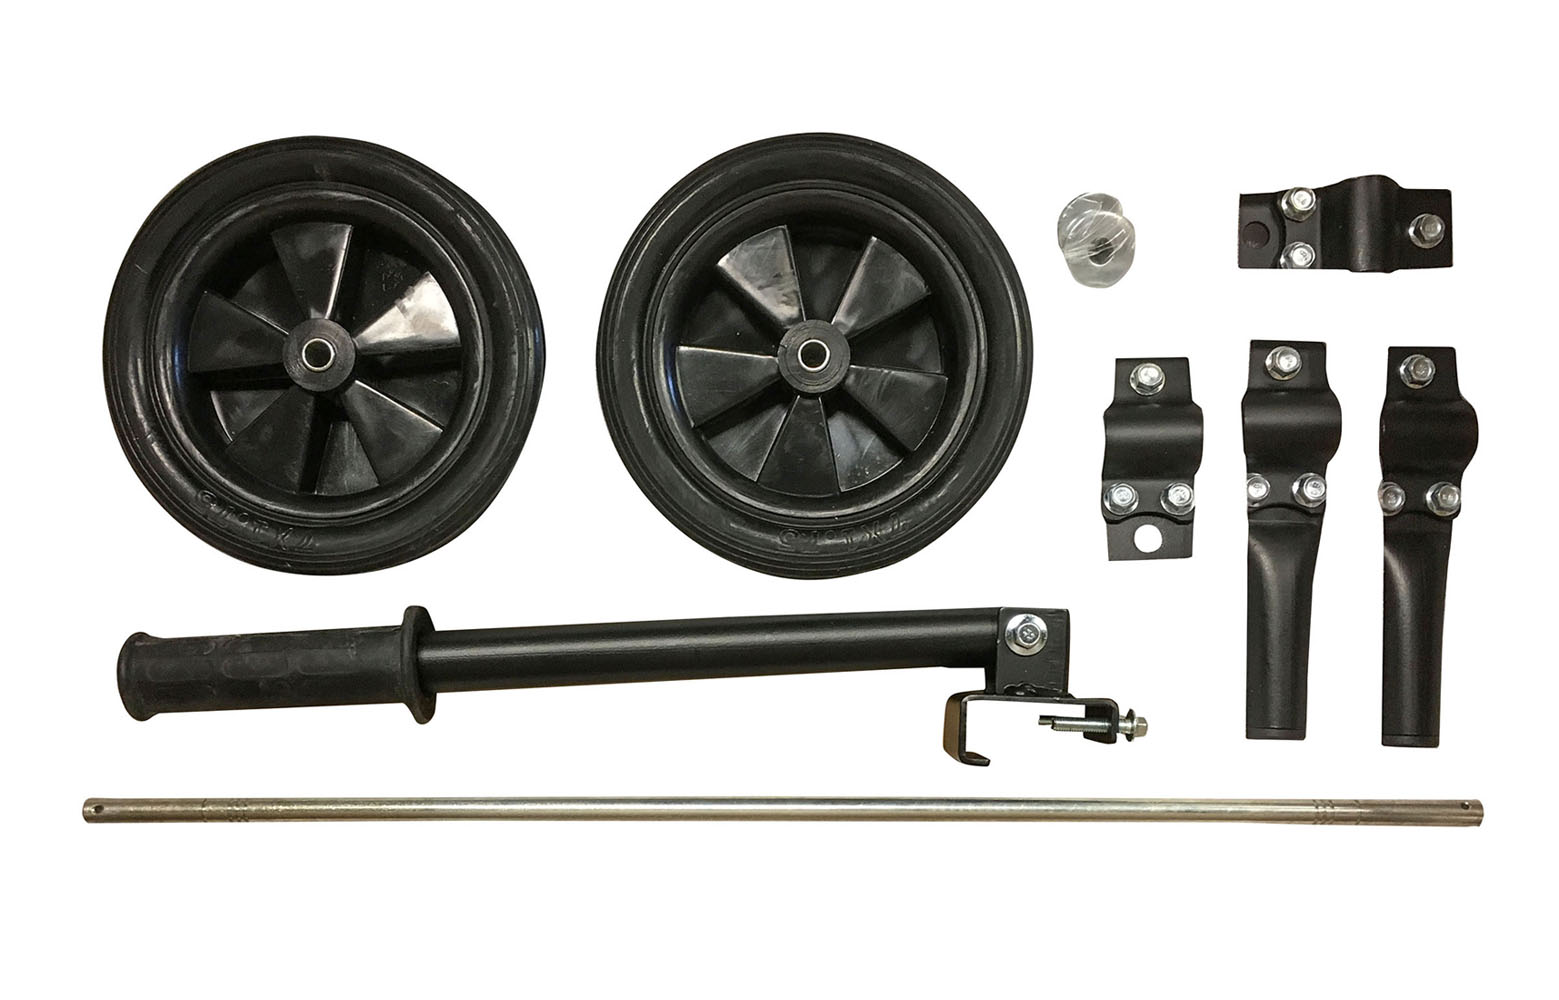 Generator Wheel Kit Assembly For 4000W Sportsman Generators